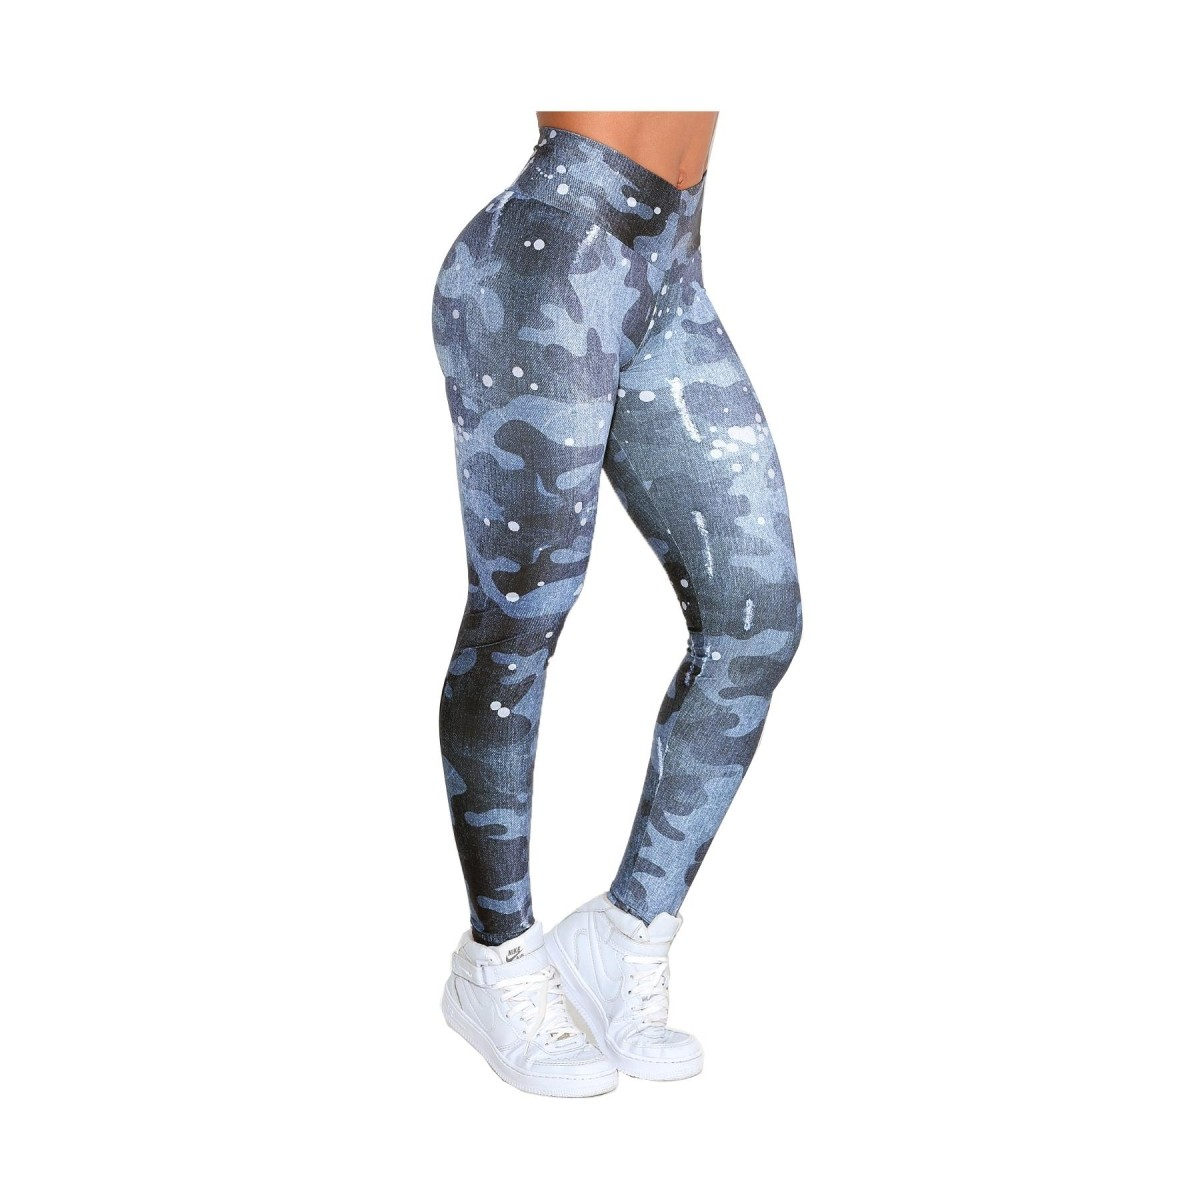 Legging Fitness Army Jeans - Rock Code